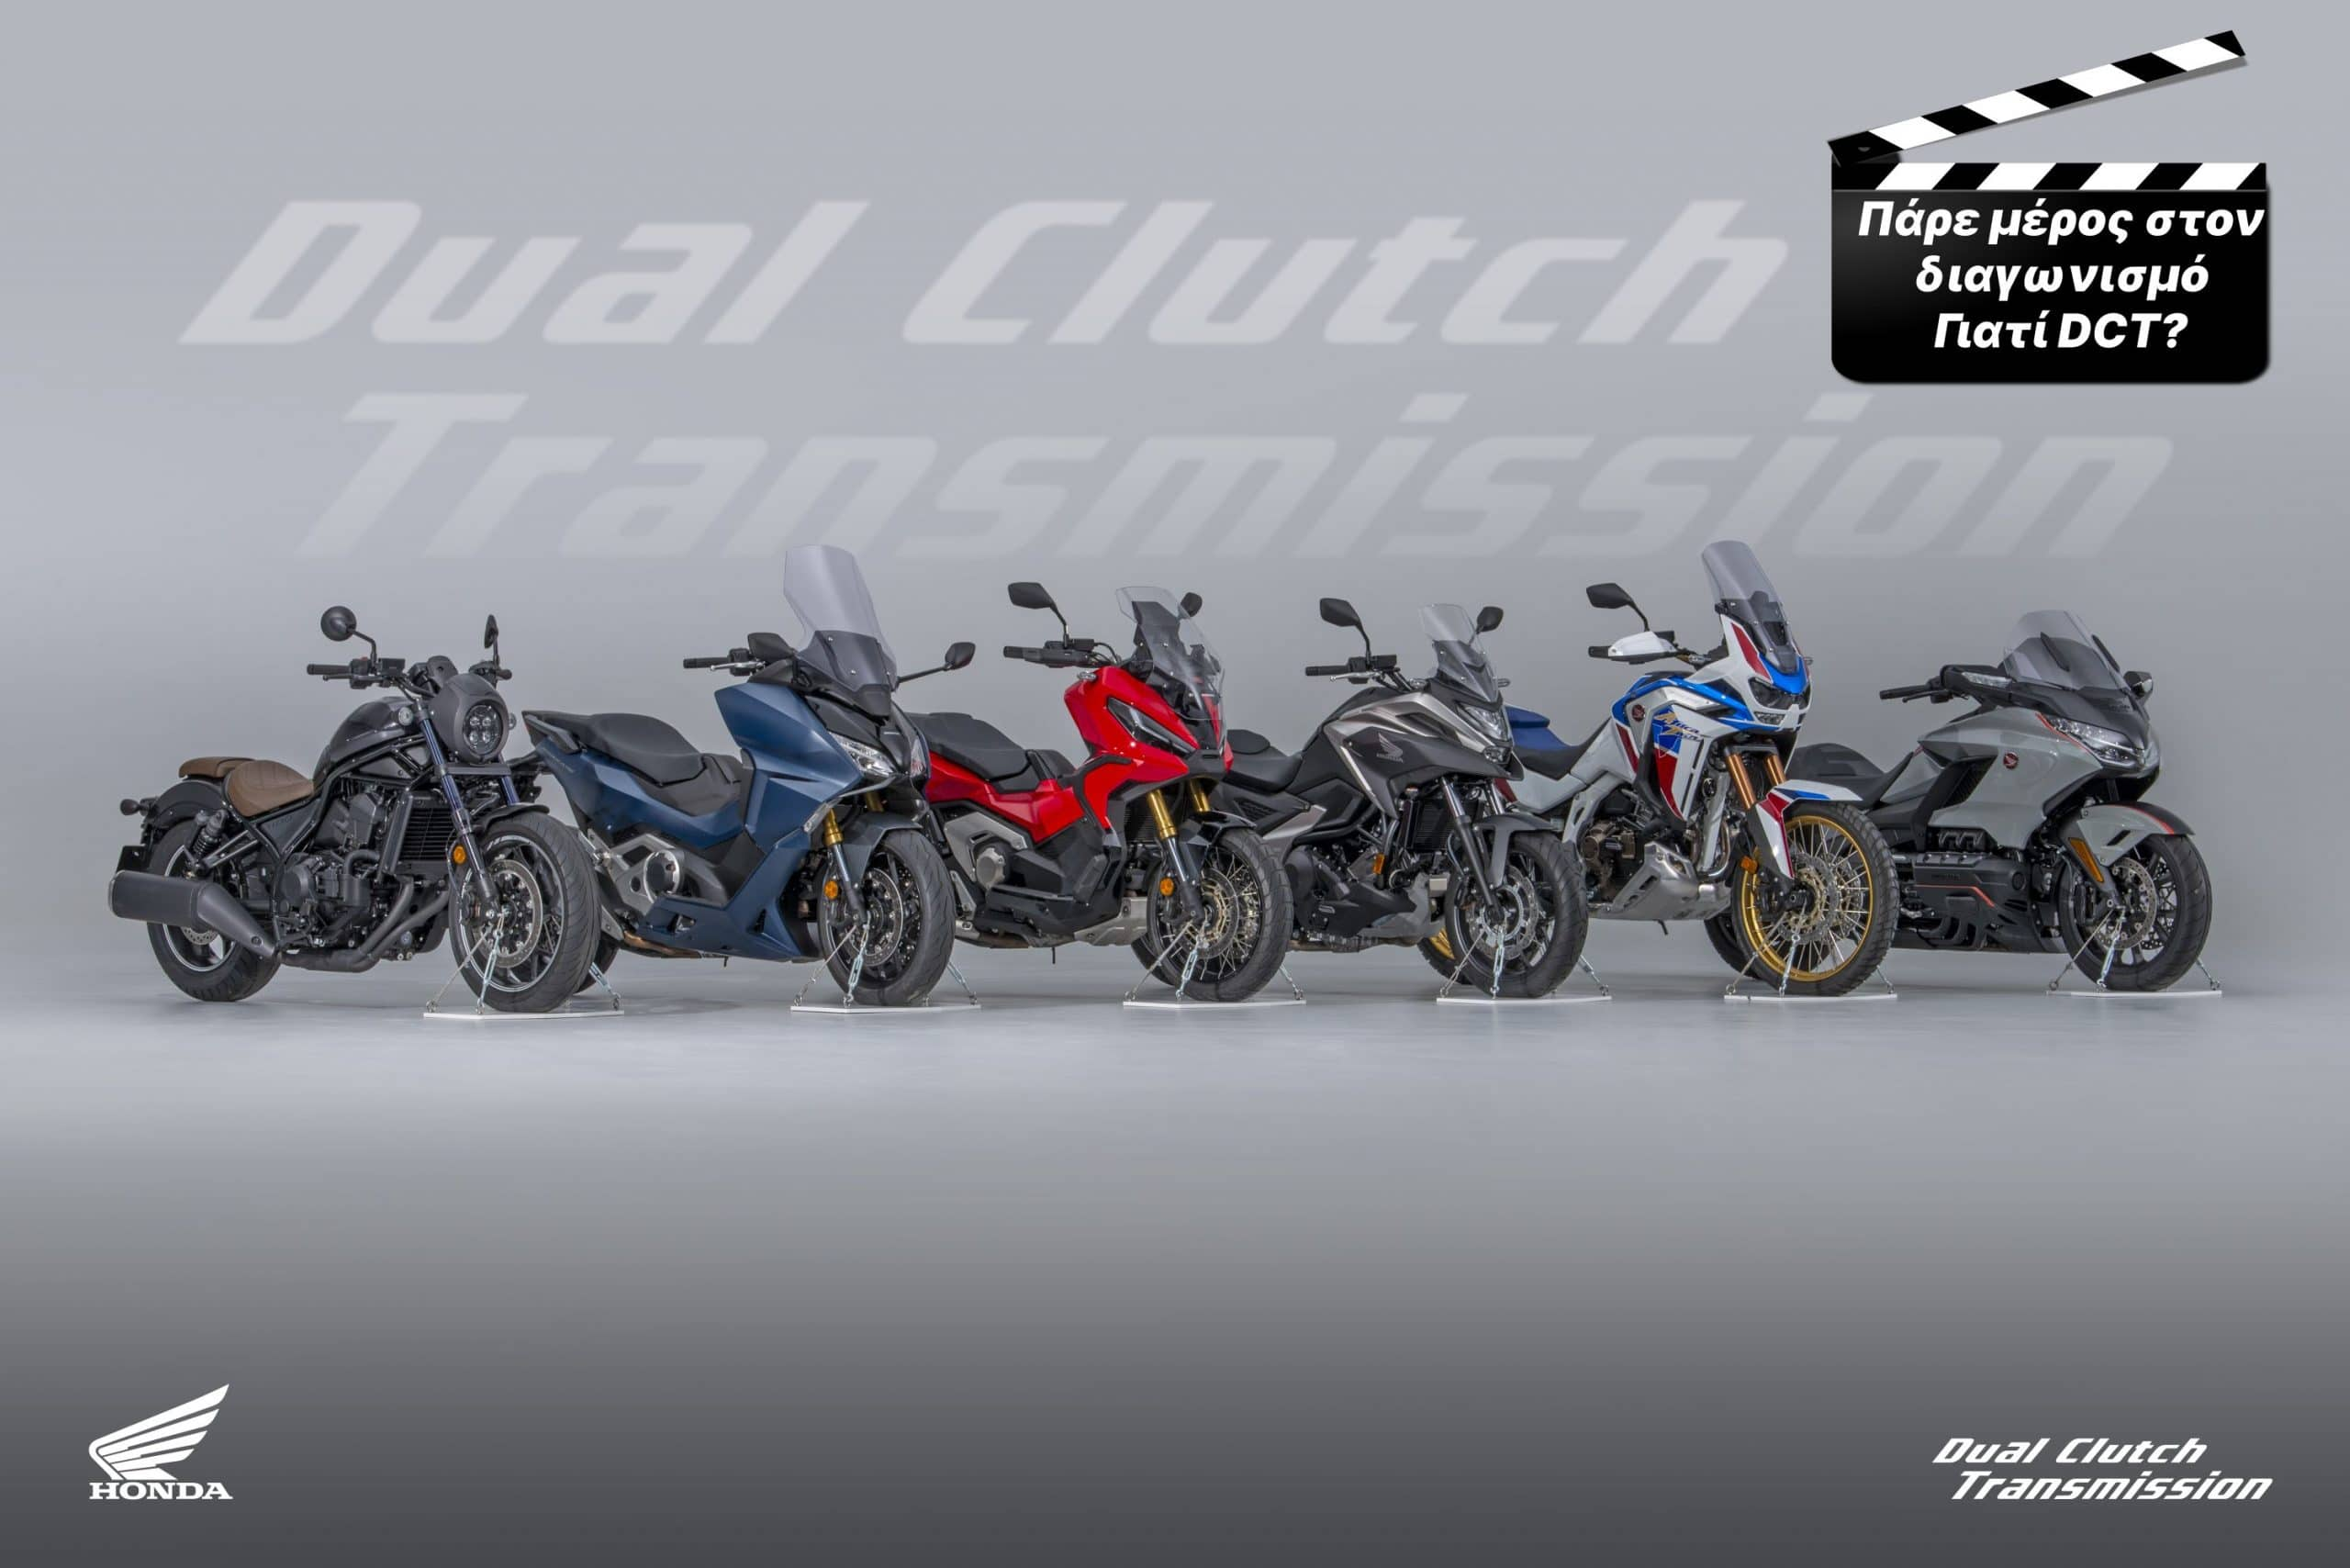 21YM DCT21 Line up Inline DCT 1 scaled Διαγωνισμός από τη Honda Motorcycles